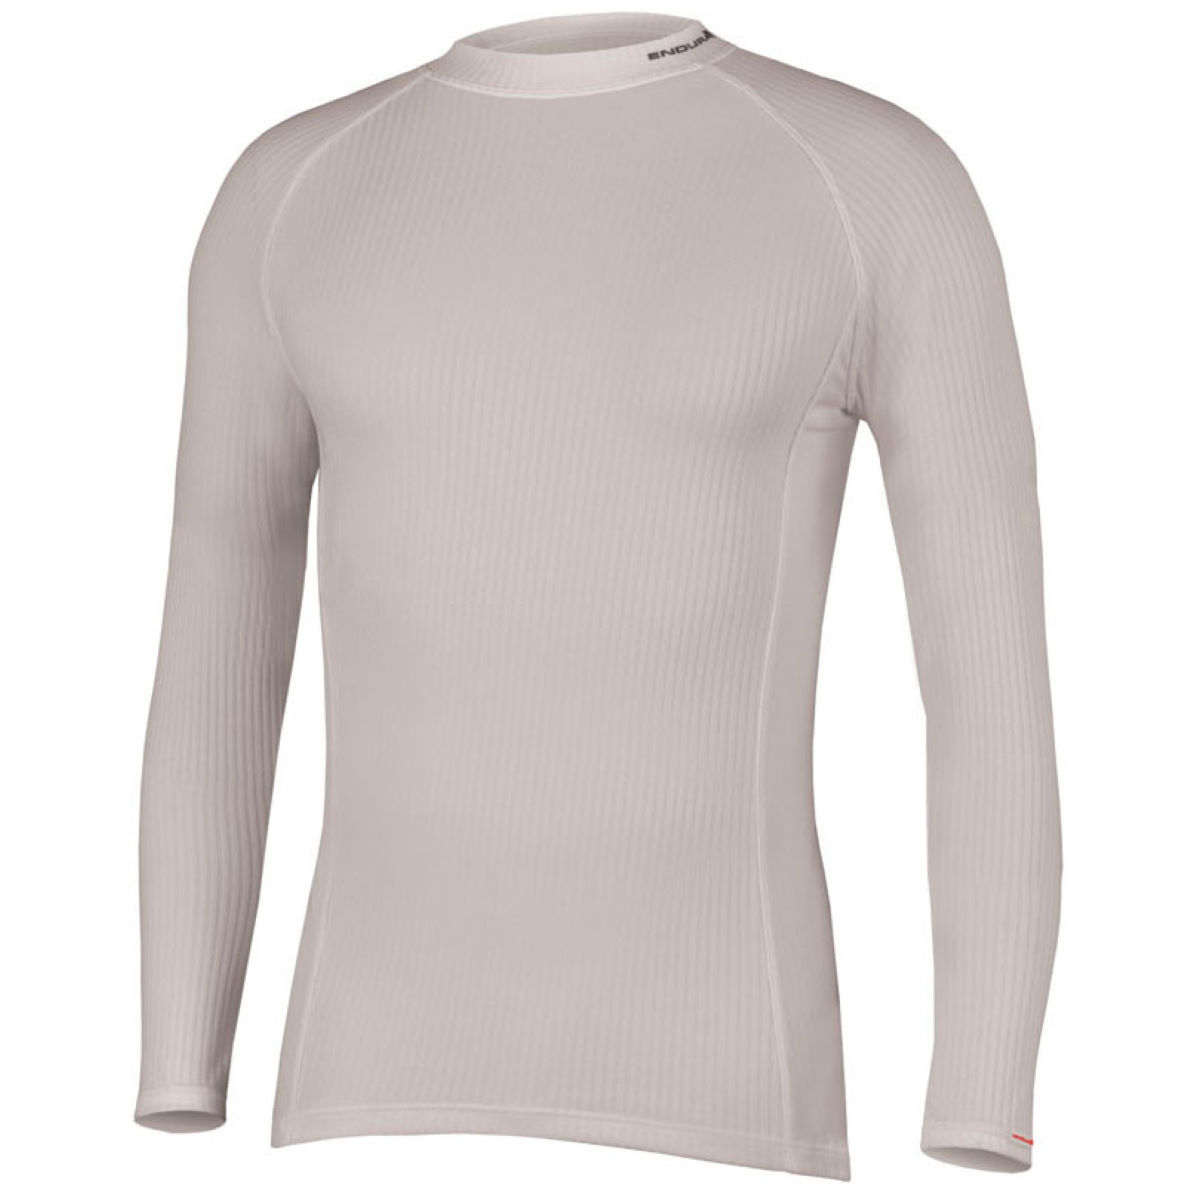 Endura Transrib L/S Baselayer - XL White | Base Layers